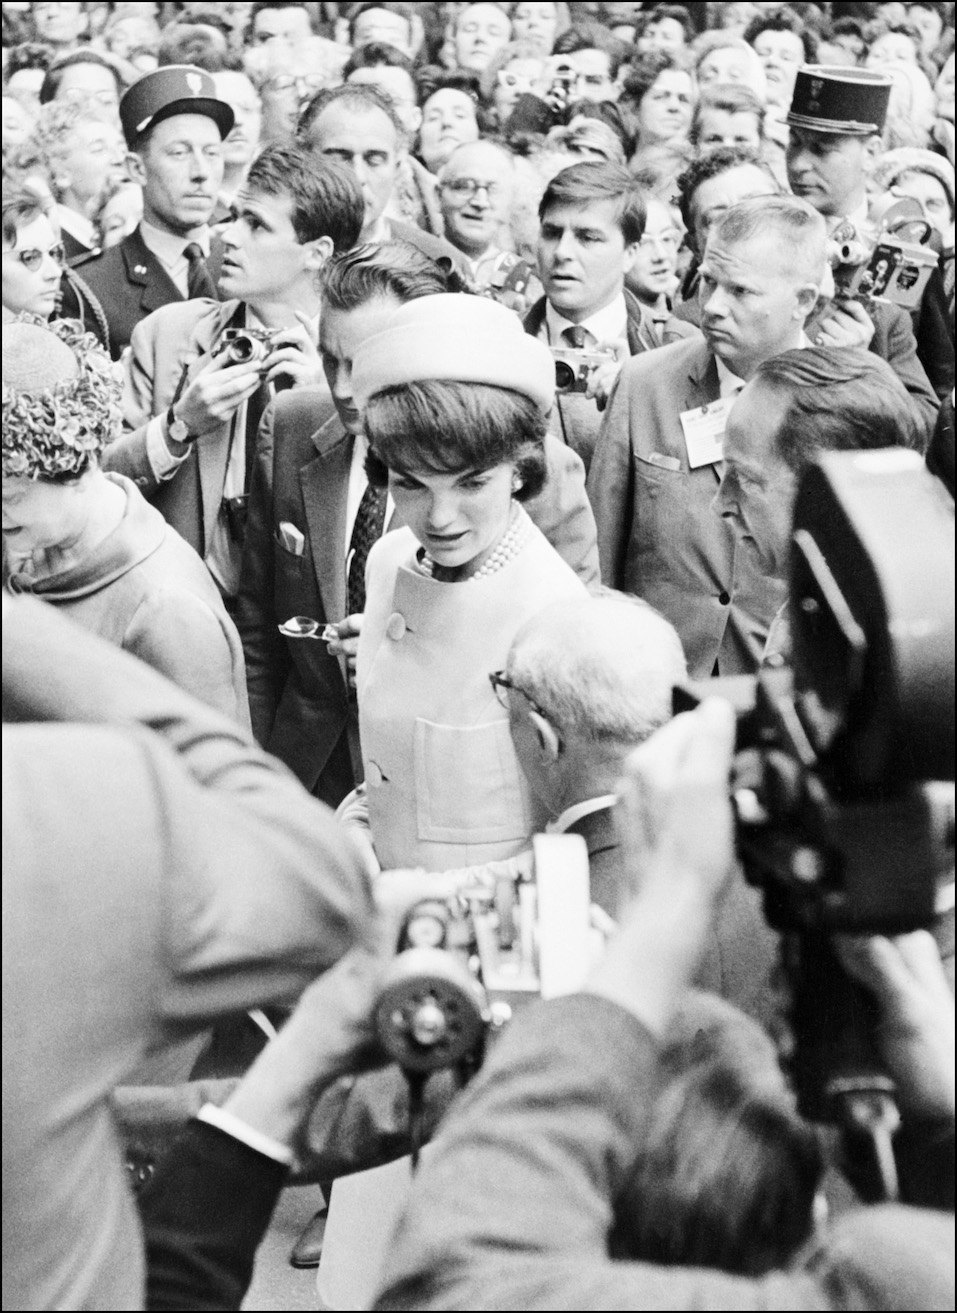 US First Lady, Jacqueline Kennedy is greeted by the crowd during her visit in Paris